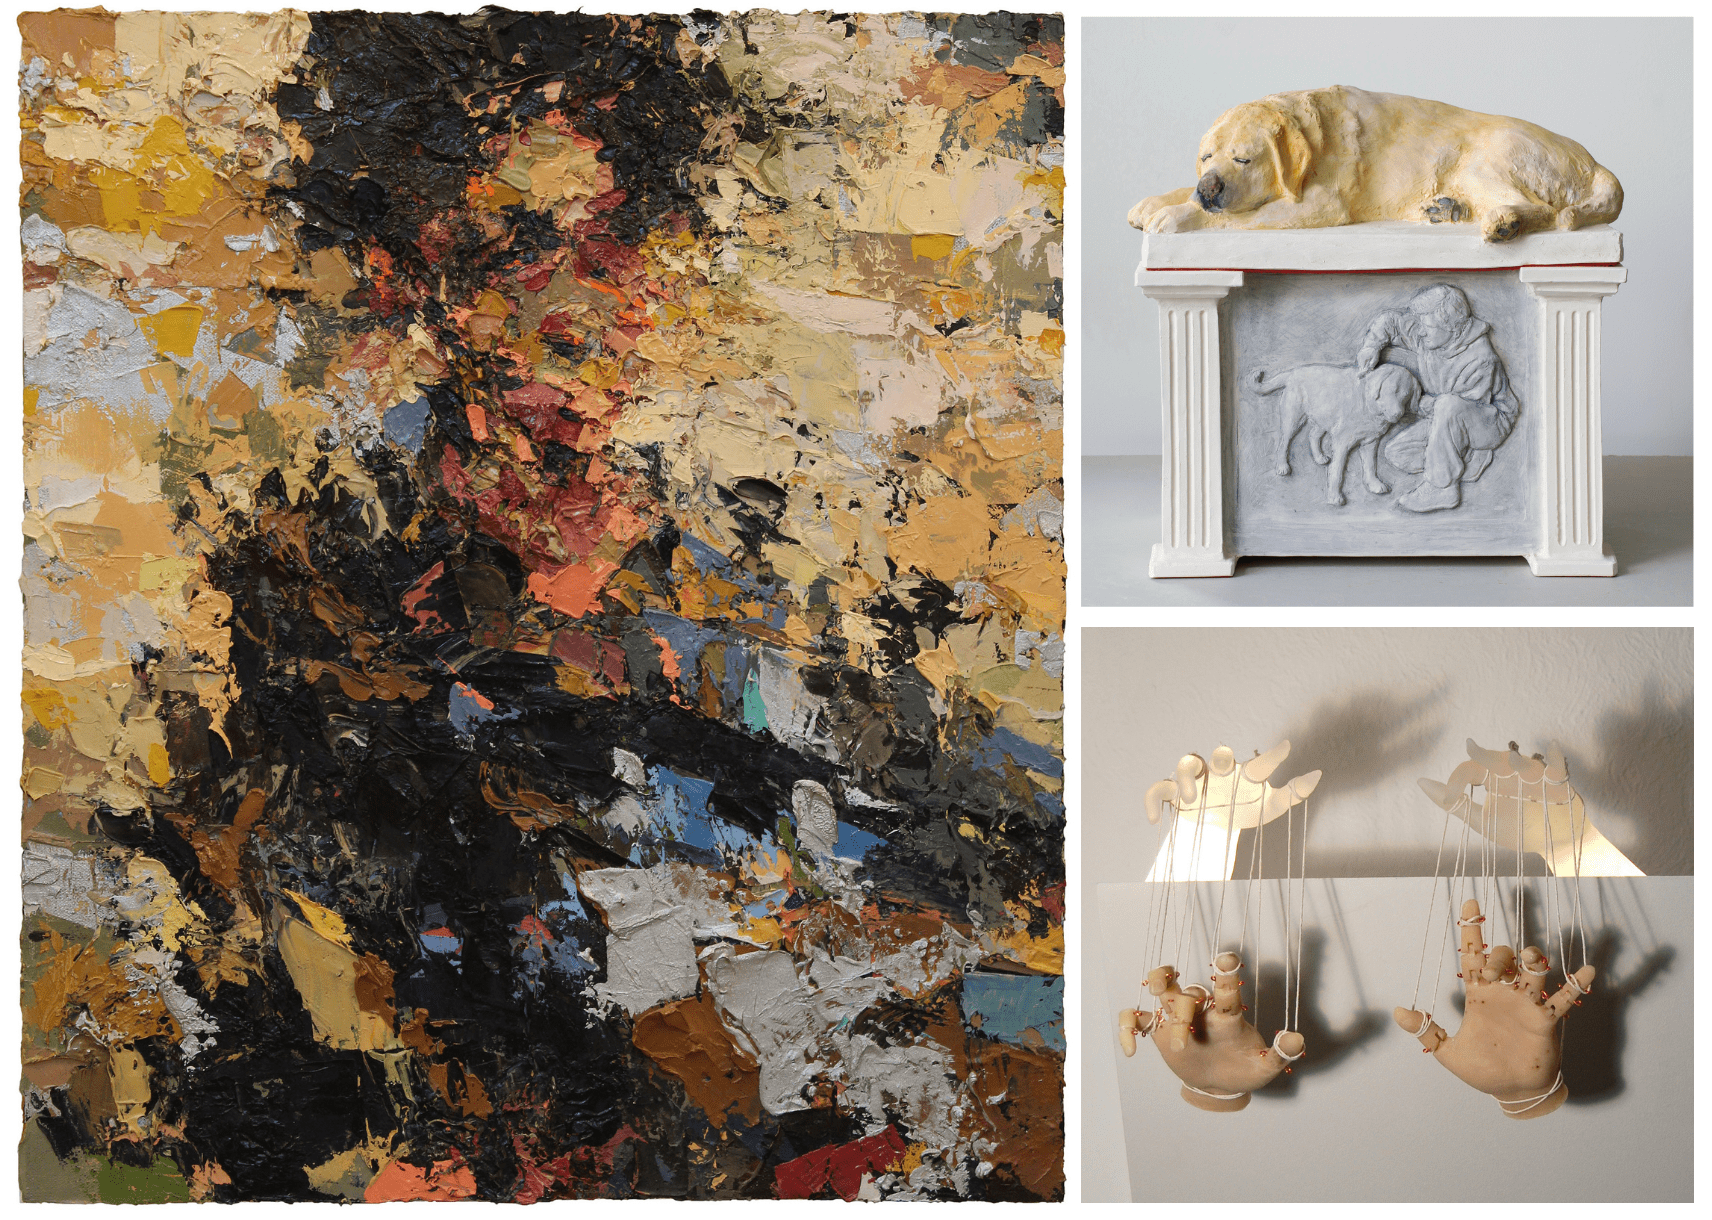 """(images clockwise from left) Joshua Meyer, Lacrimoso, oil on canvas, 16"""" x 18"""";  Evan Morse, Dog Fur Reliquary, terra cotta, dog fur, acrylic paint, glass,15"""" x 15"""" x 10"""";  Katie Dye, It's All in the Wrist, glass, wood, metal, 20"""" x 18"""" x 17"""""""